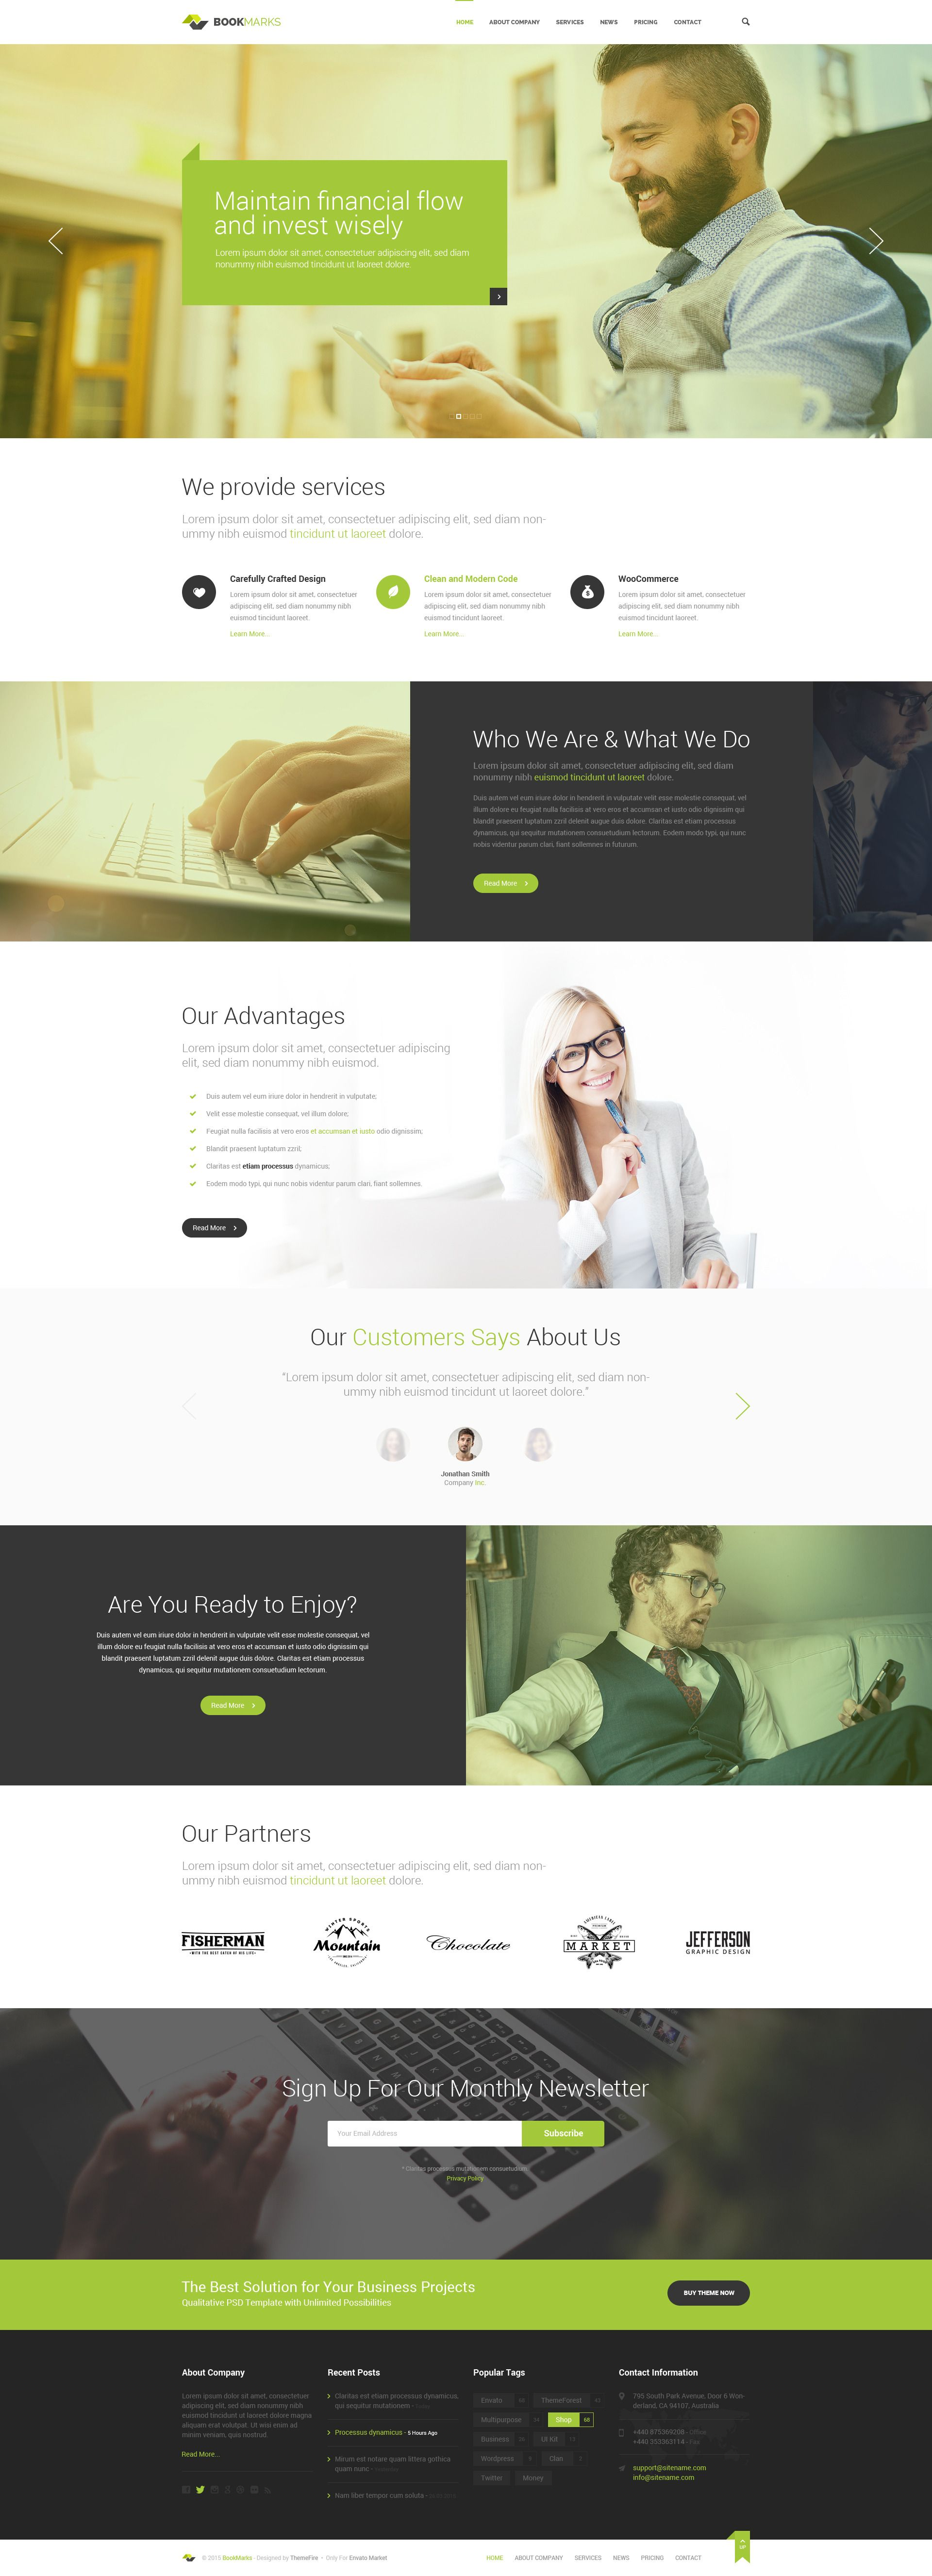 BookMarks - Corporate & OnePage PSD Template | Diseño web ...